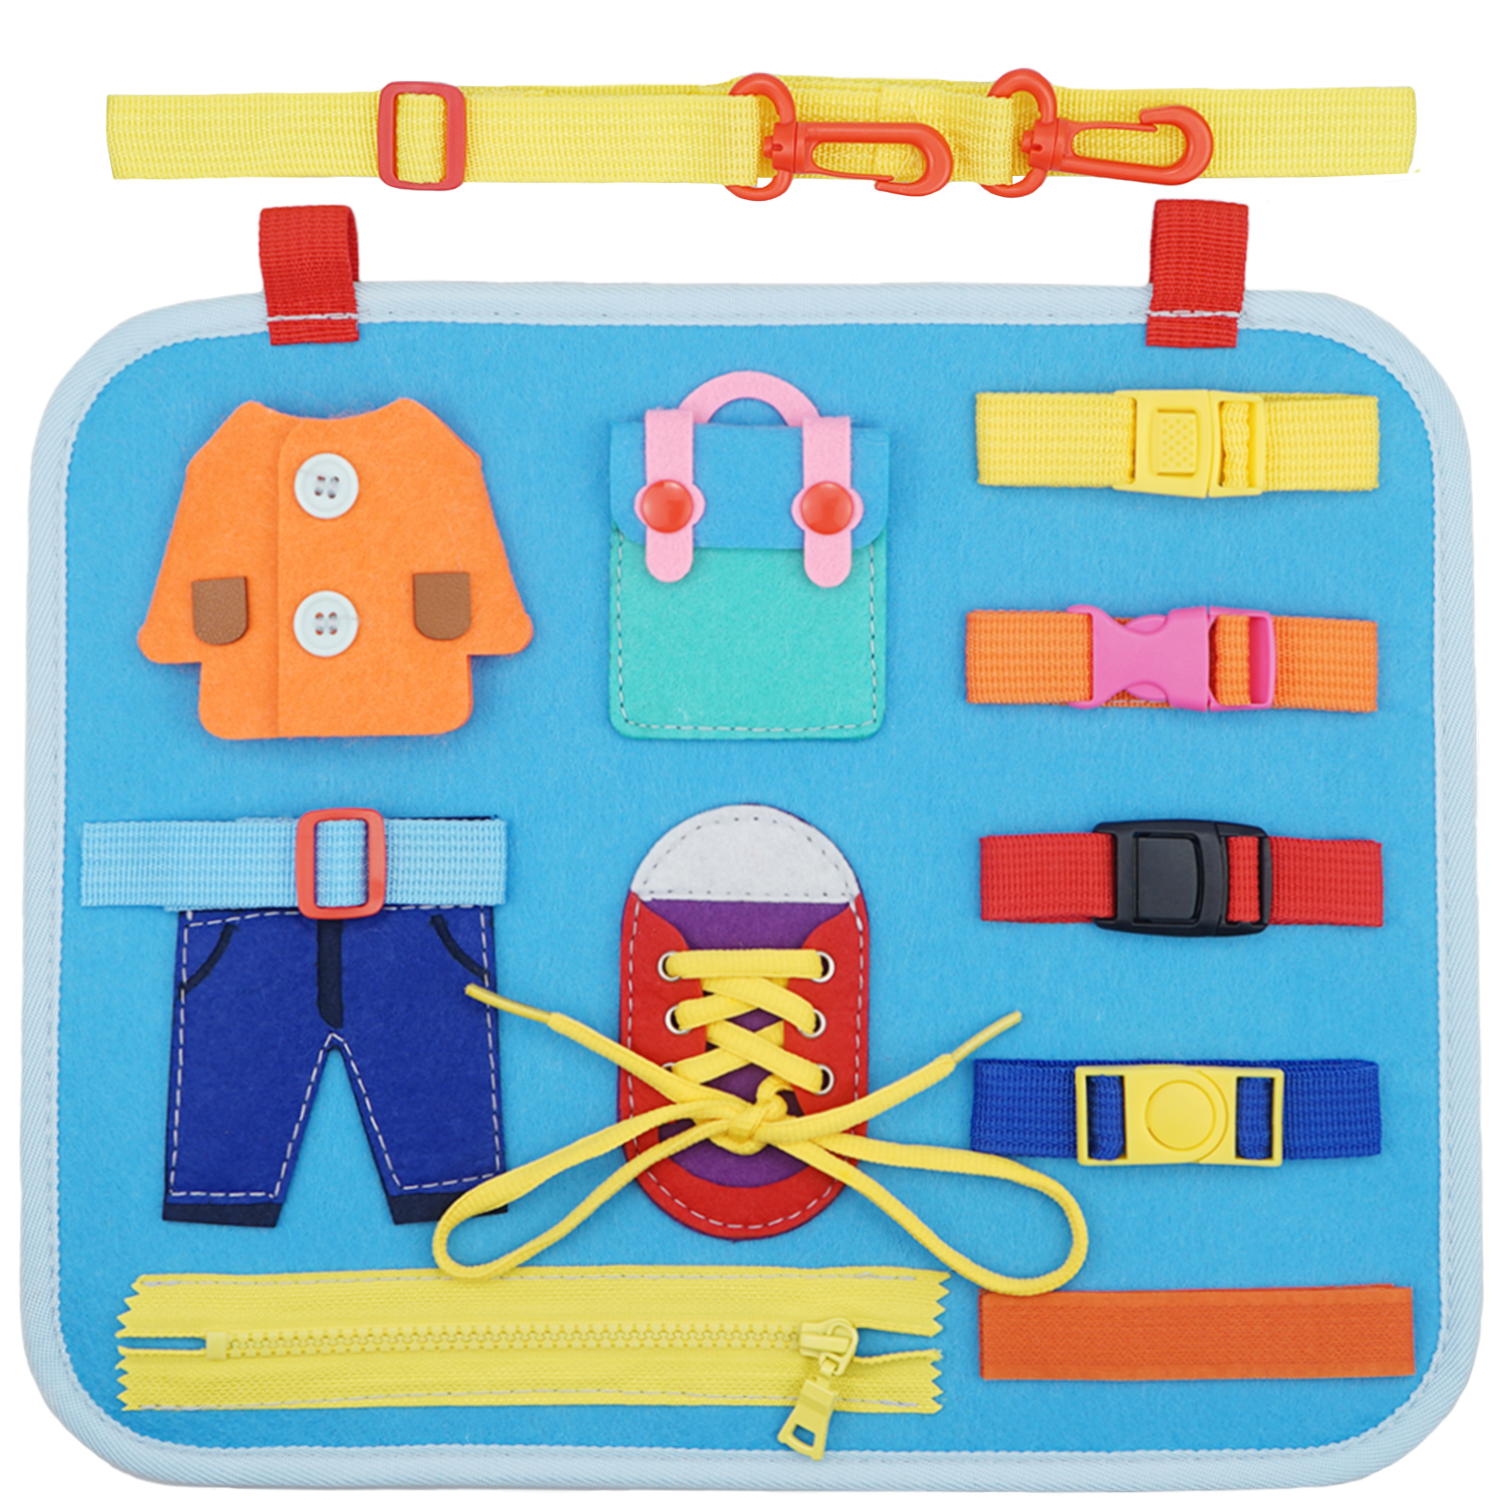 busy-board-toys with cash back rebate